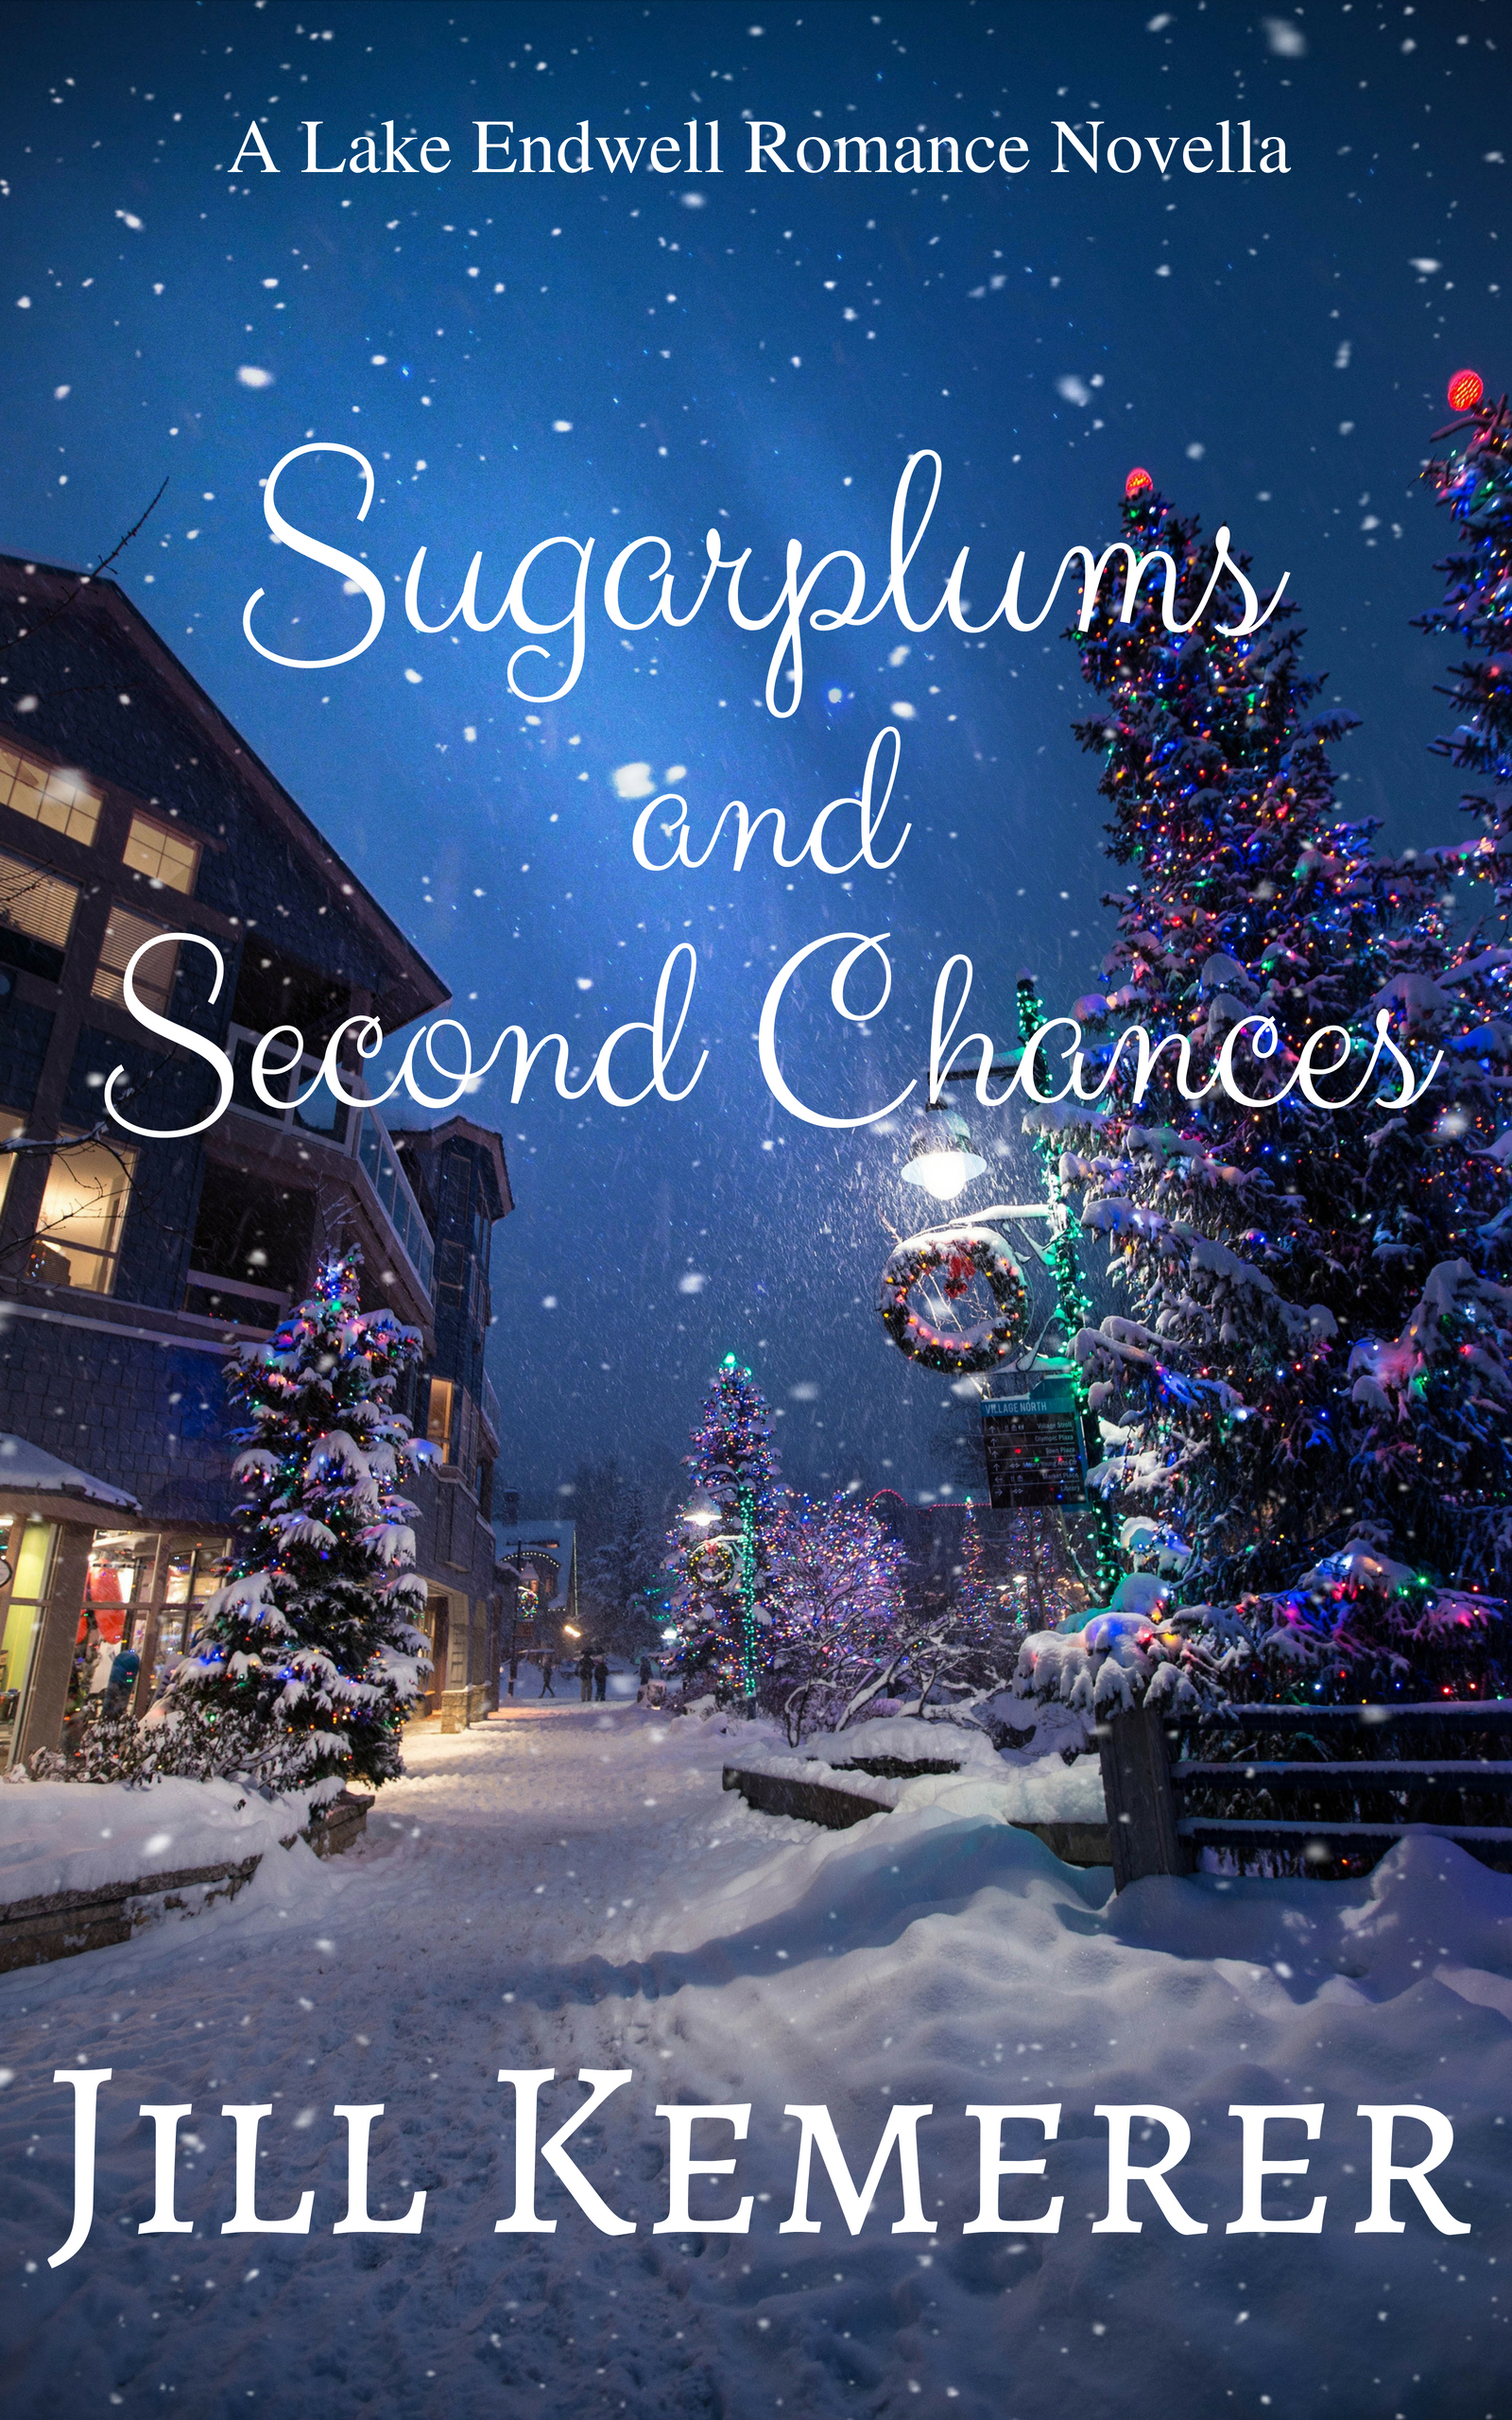 Sugarplums and Second Chances: A Lake Endwell Romance Novella